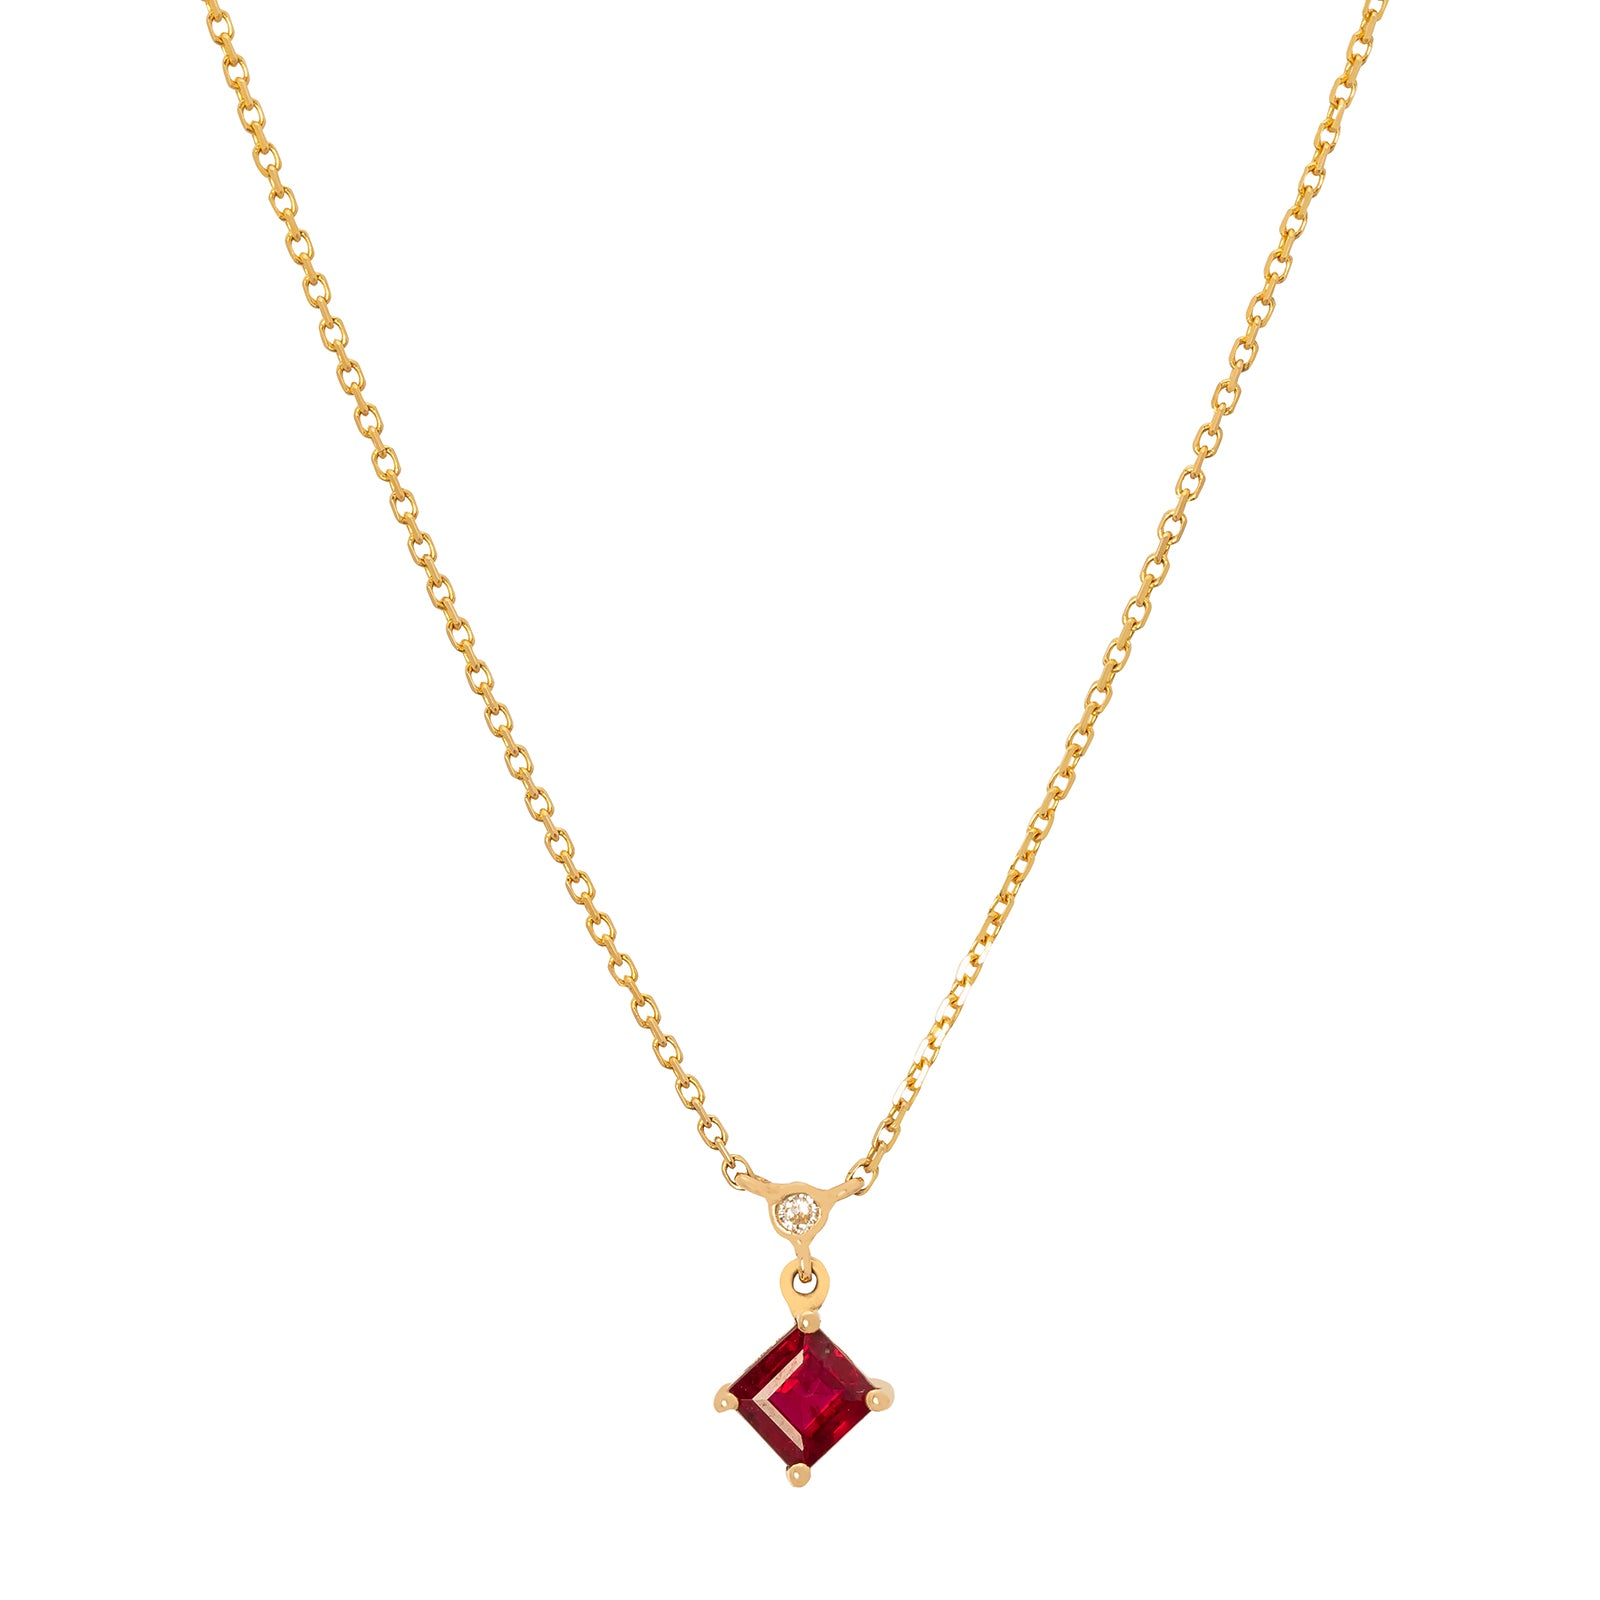 YI Collection Ruby & Diamond Whispers Necklace - Necklaces - Broken English Jewelry